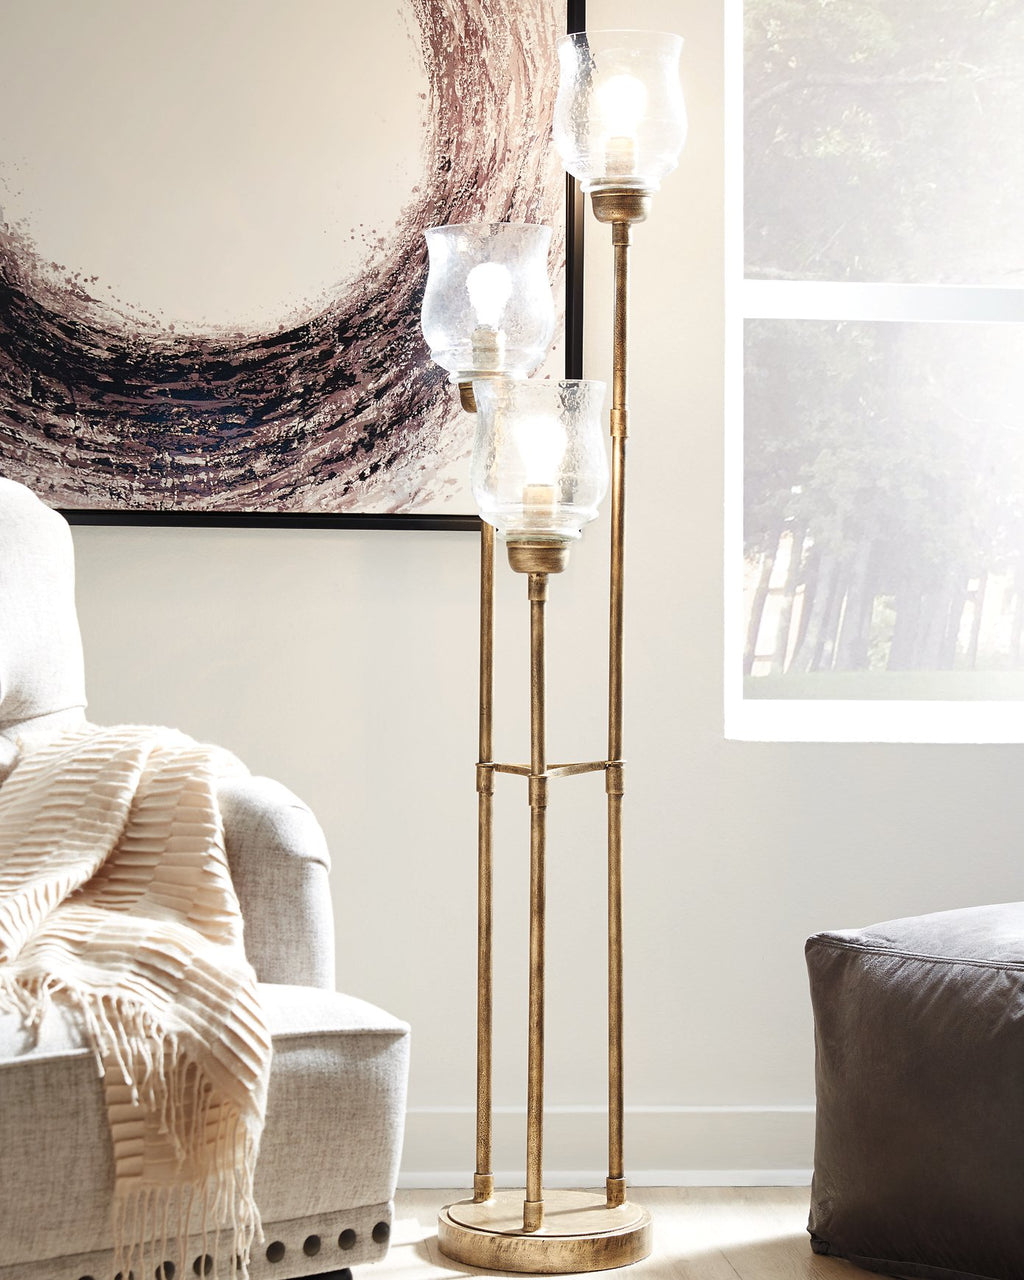 Emmie Signature Design by Ashley Floor Lamp image